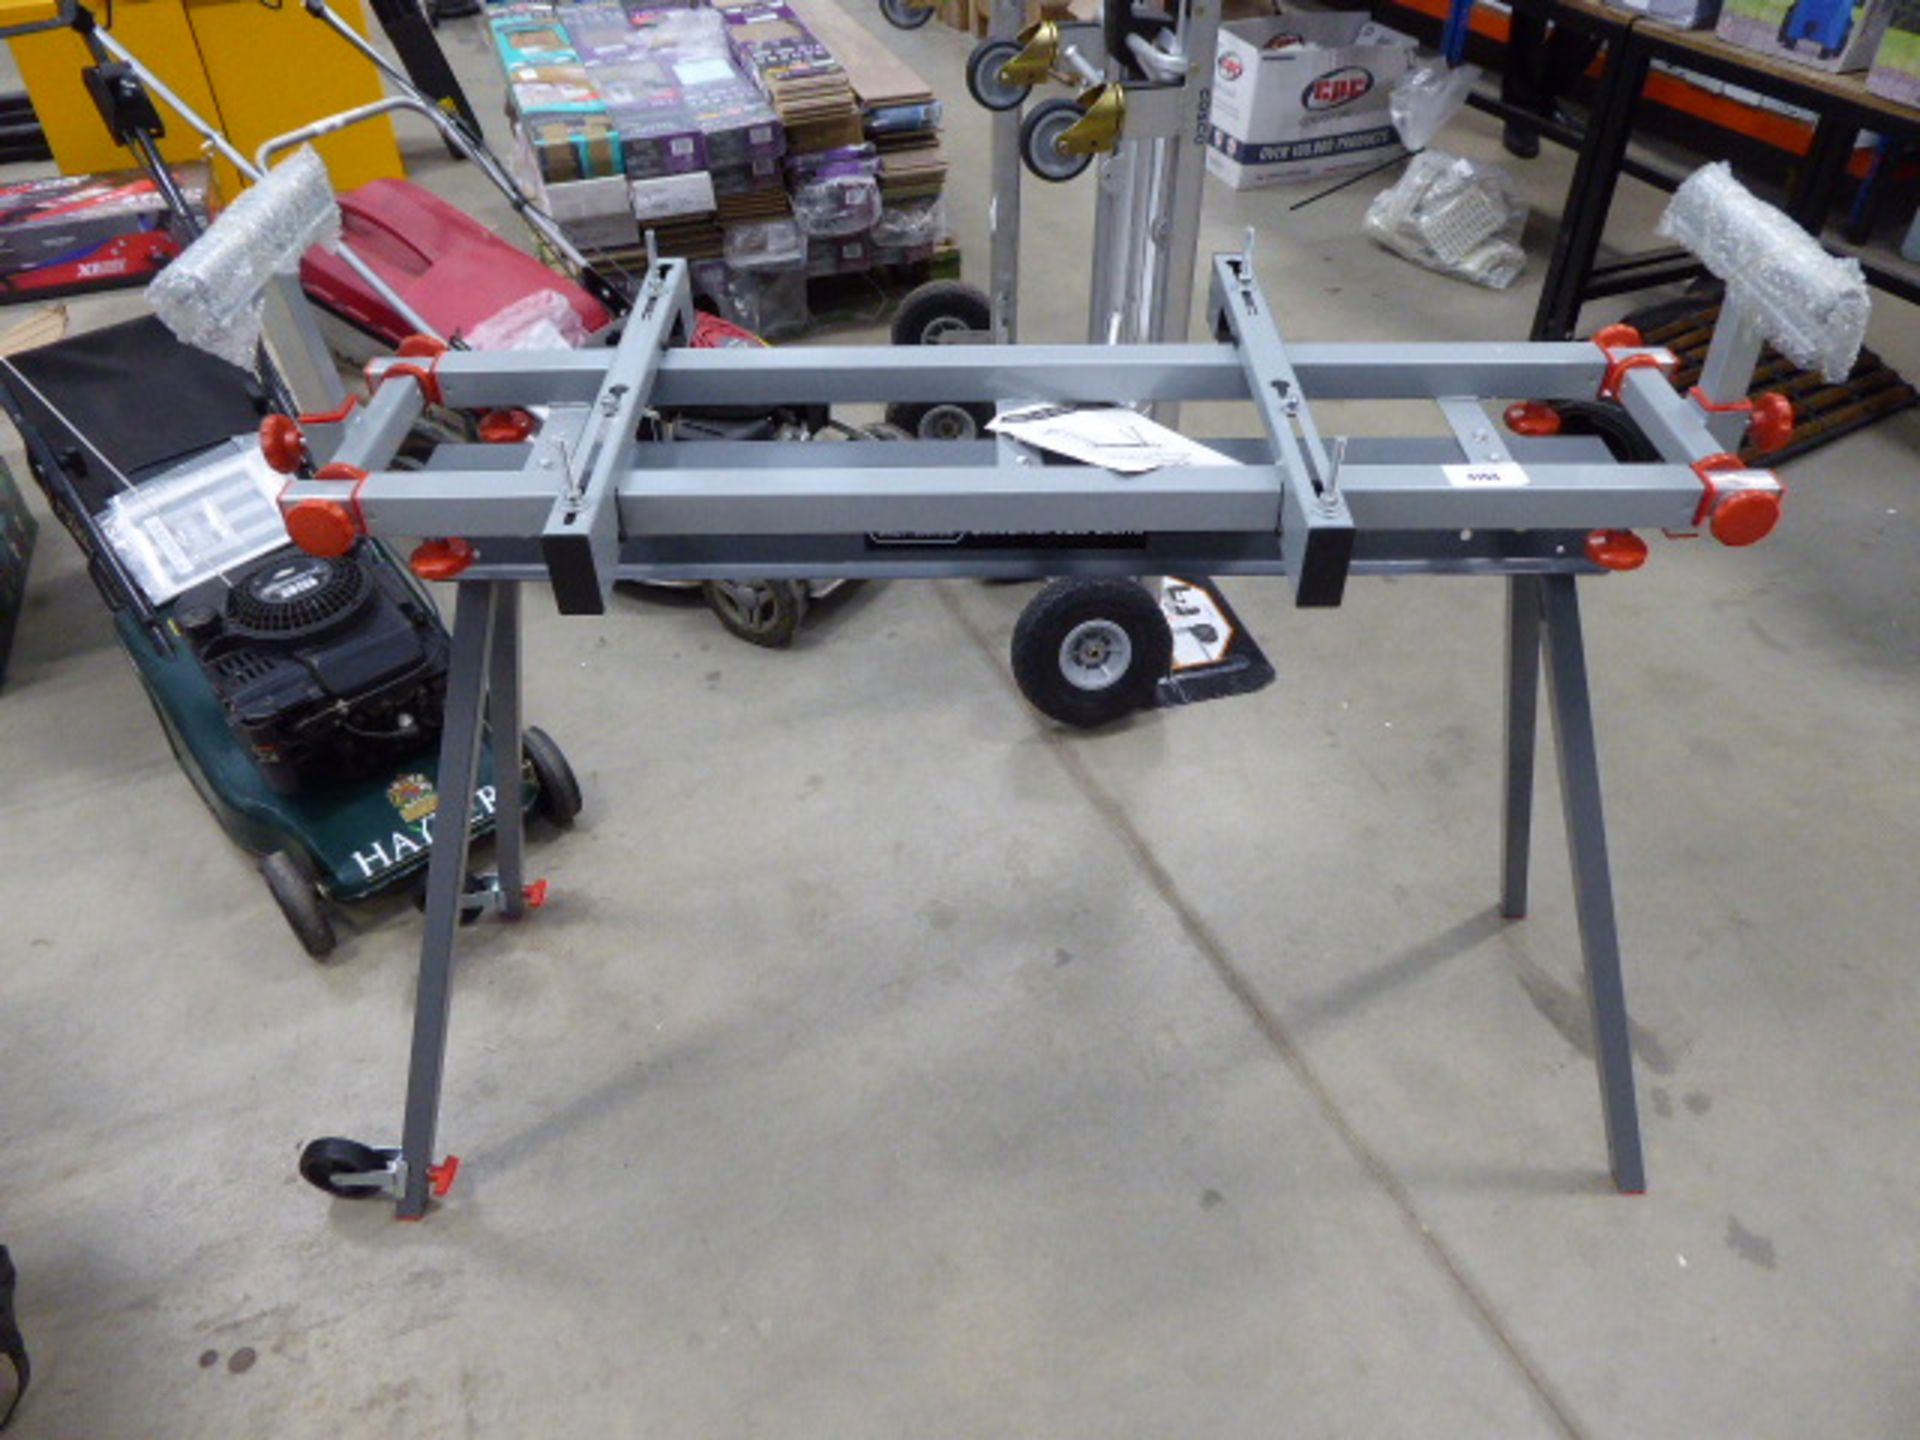 ESIP mitre saw stand